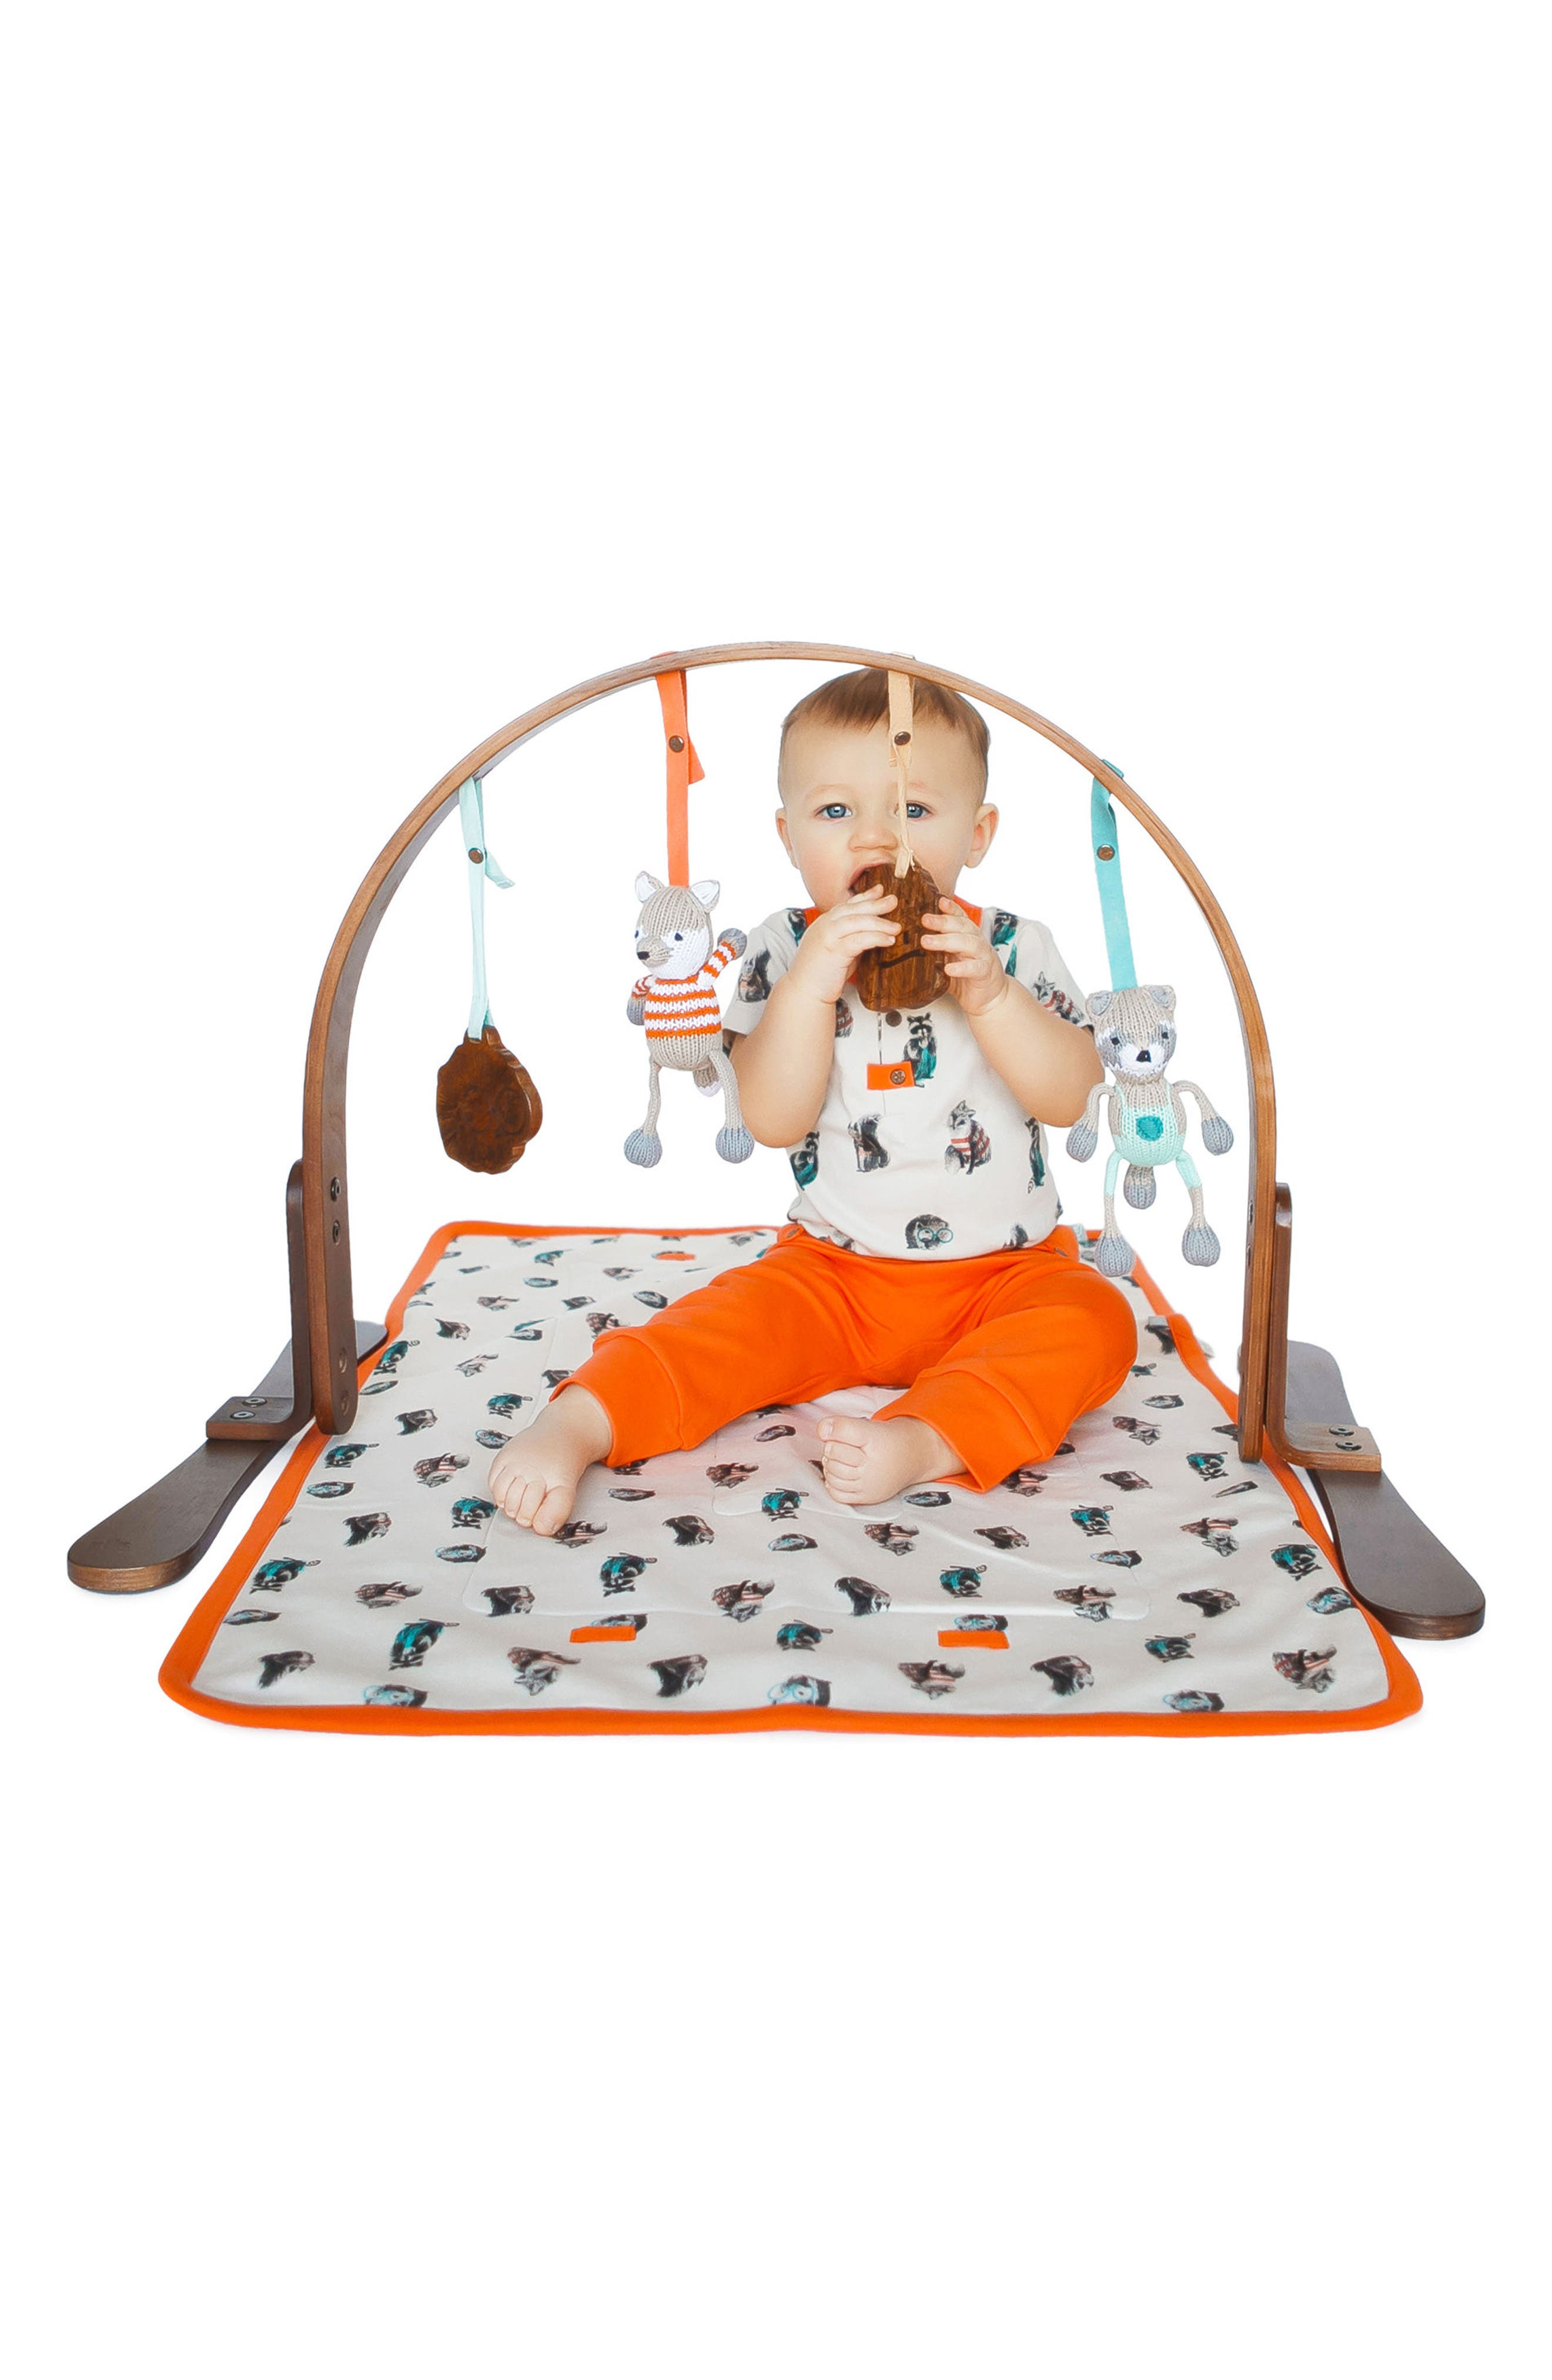 Wooden Play Gym & Woodland Mat,                             Alternate thumbnail 3, color,                             205